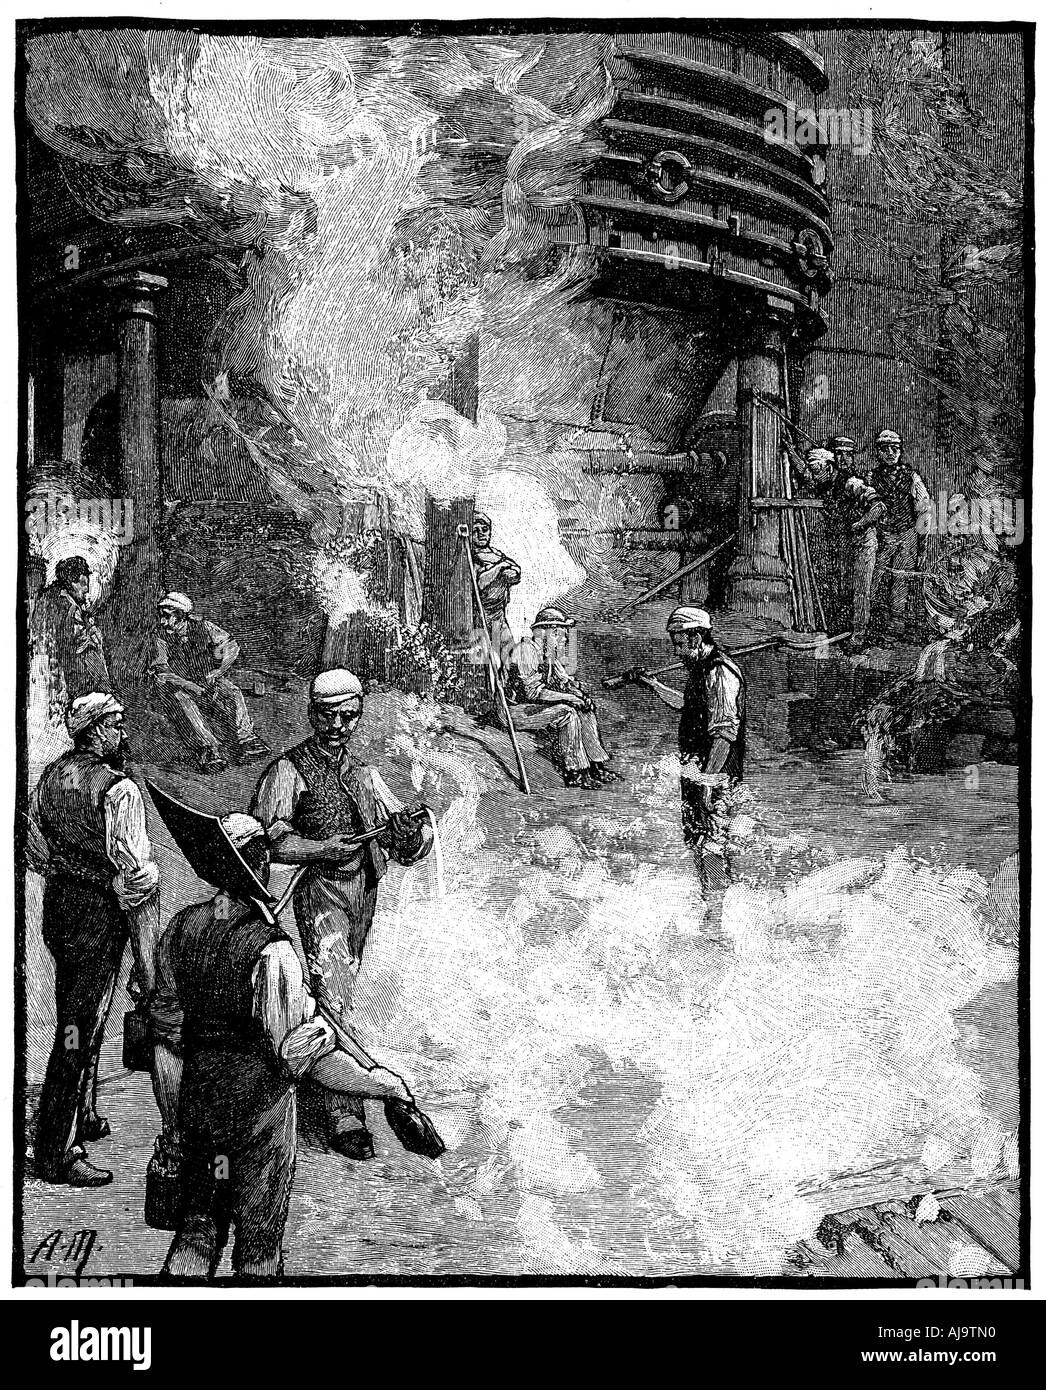 Tapping blast furnace and casting iron into pigs Siemens iron and steel works Wales 1885  - Stock Image